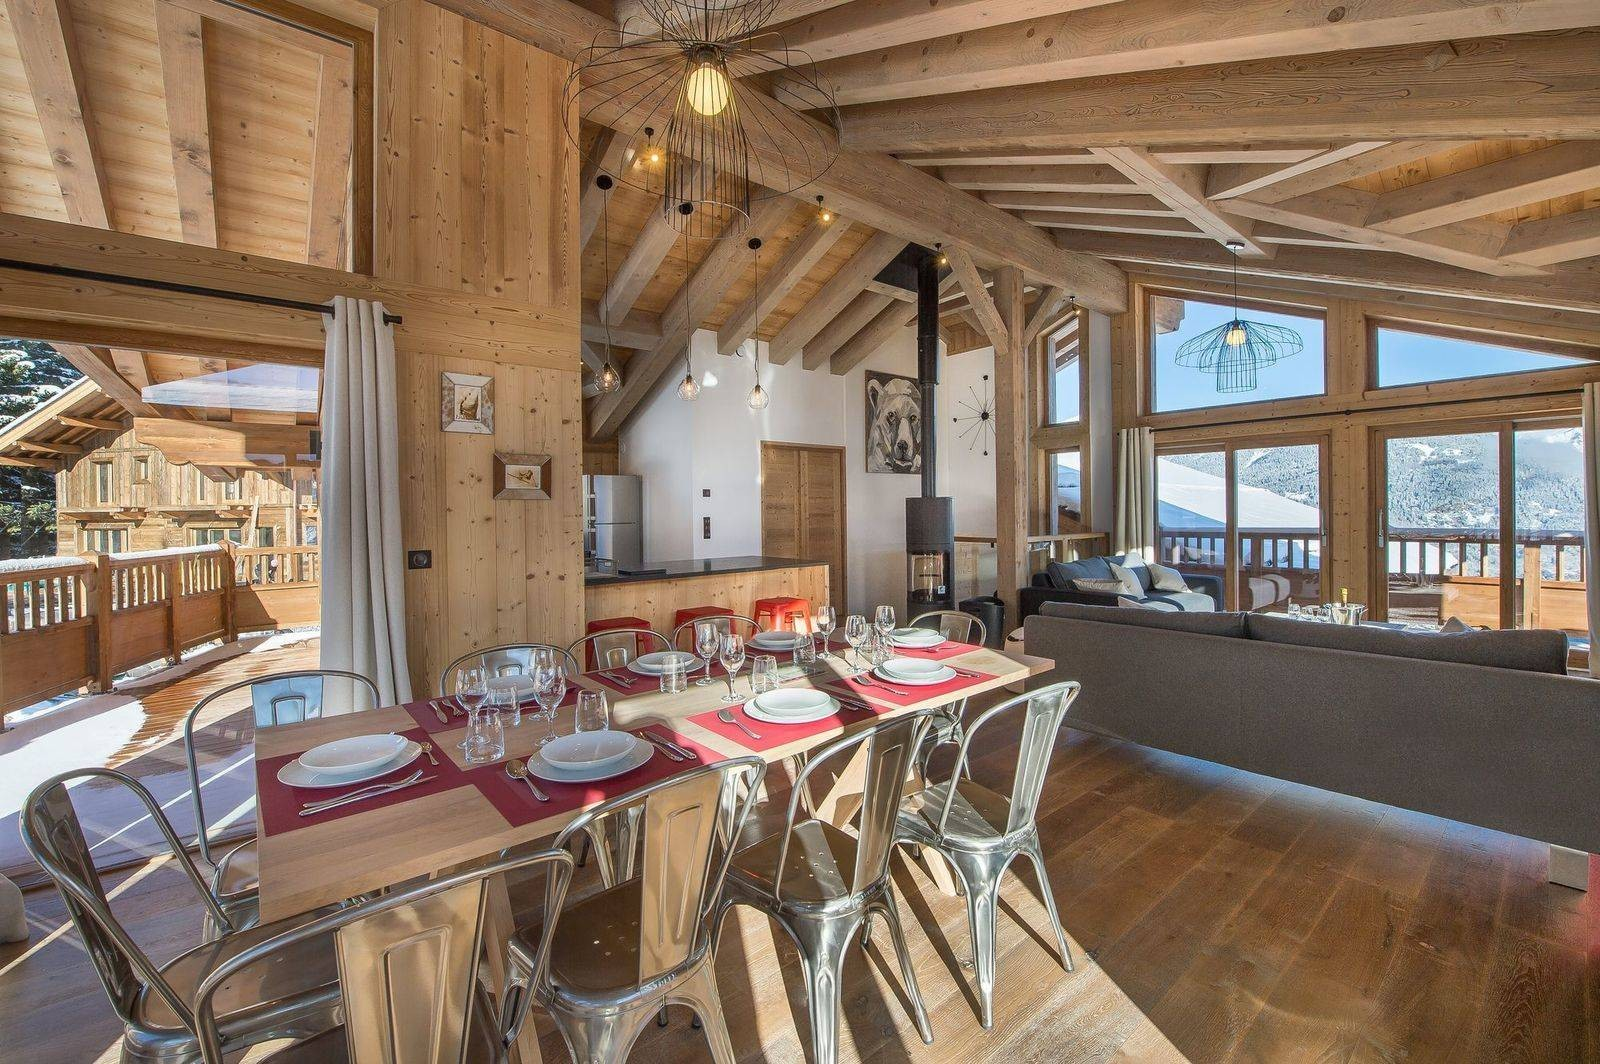 Courchevel 1550 Location Chalet Luxe Nibite Salle A Manger 2